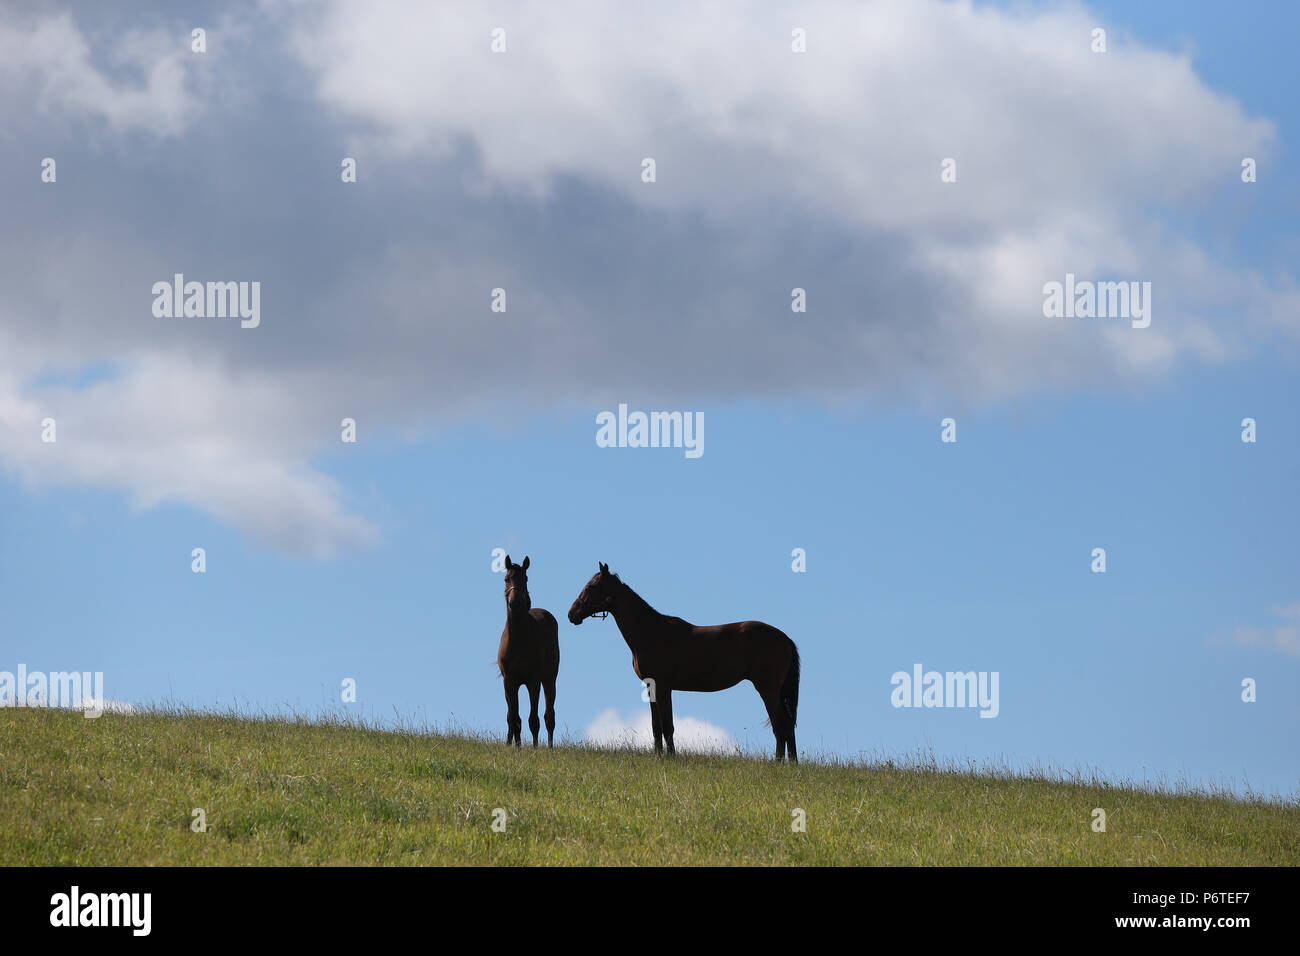 Studied Goerlsdorf, horses are standing in a pasture - Stock Image